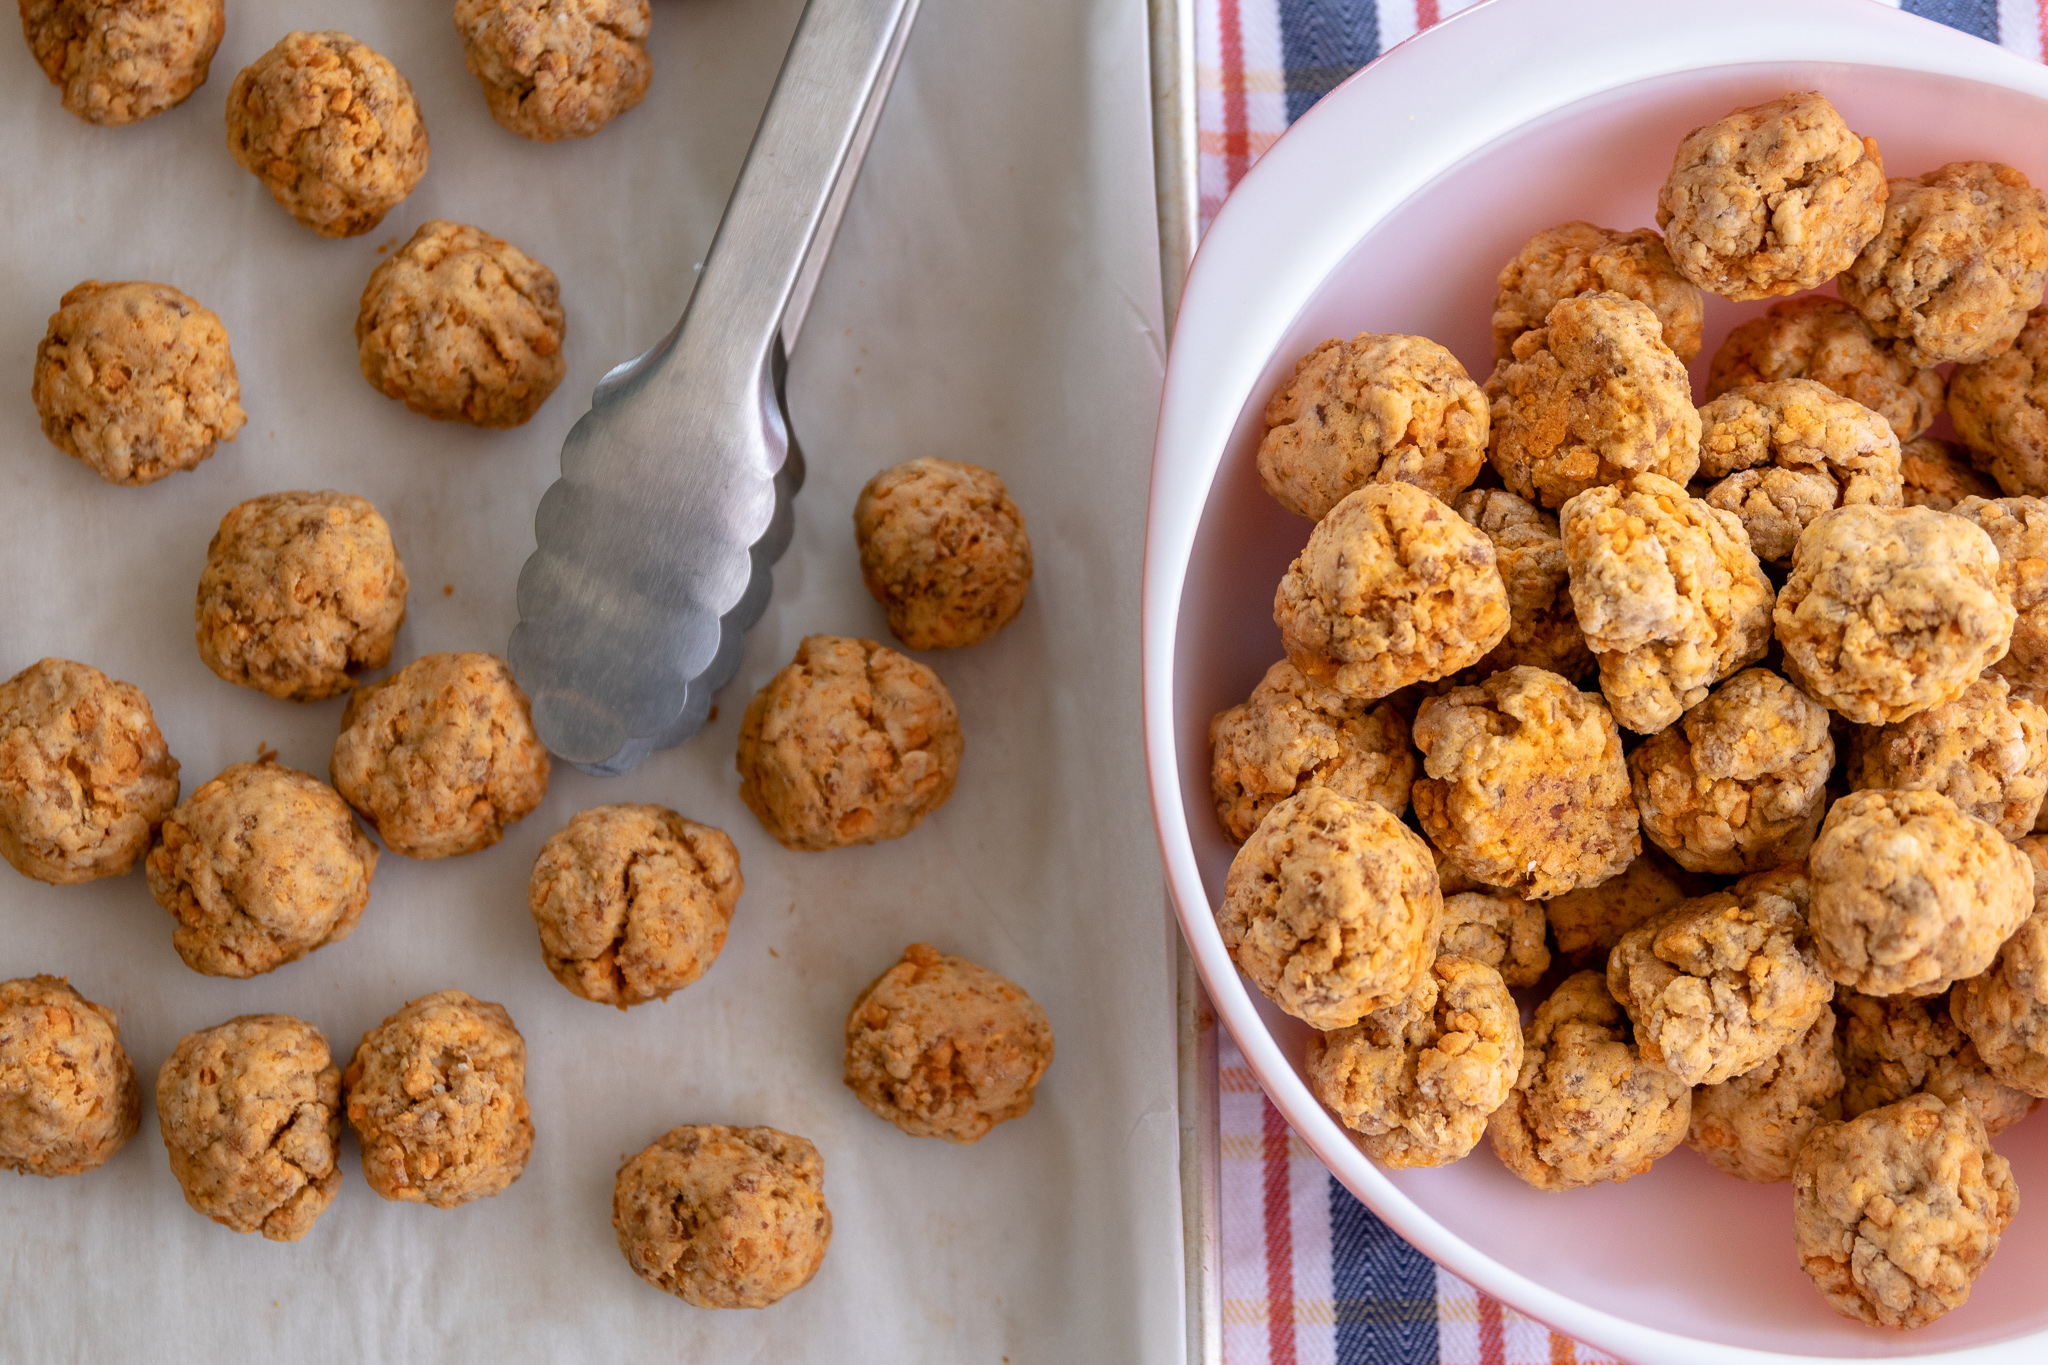 Growing up in the south, sausage balls were a party staple. Every baby shower, bridal shower, or family gathering had a tray of these tasty treats. By simply swapping out the cheese and sausage in the original recipe for vegan versions, these yummy little bites will quickly become vegan party favorite!